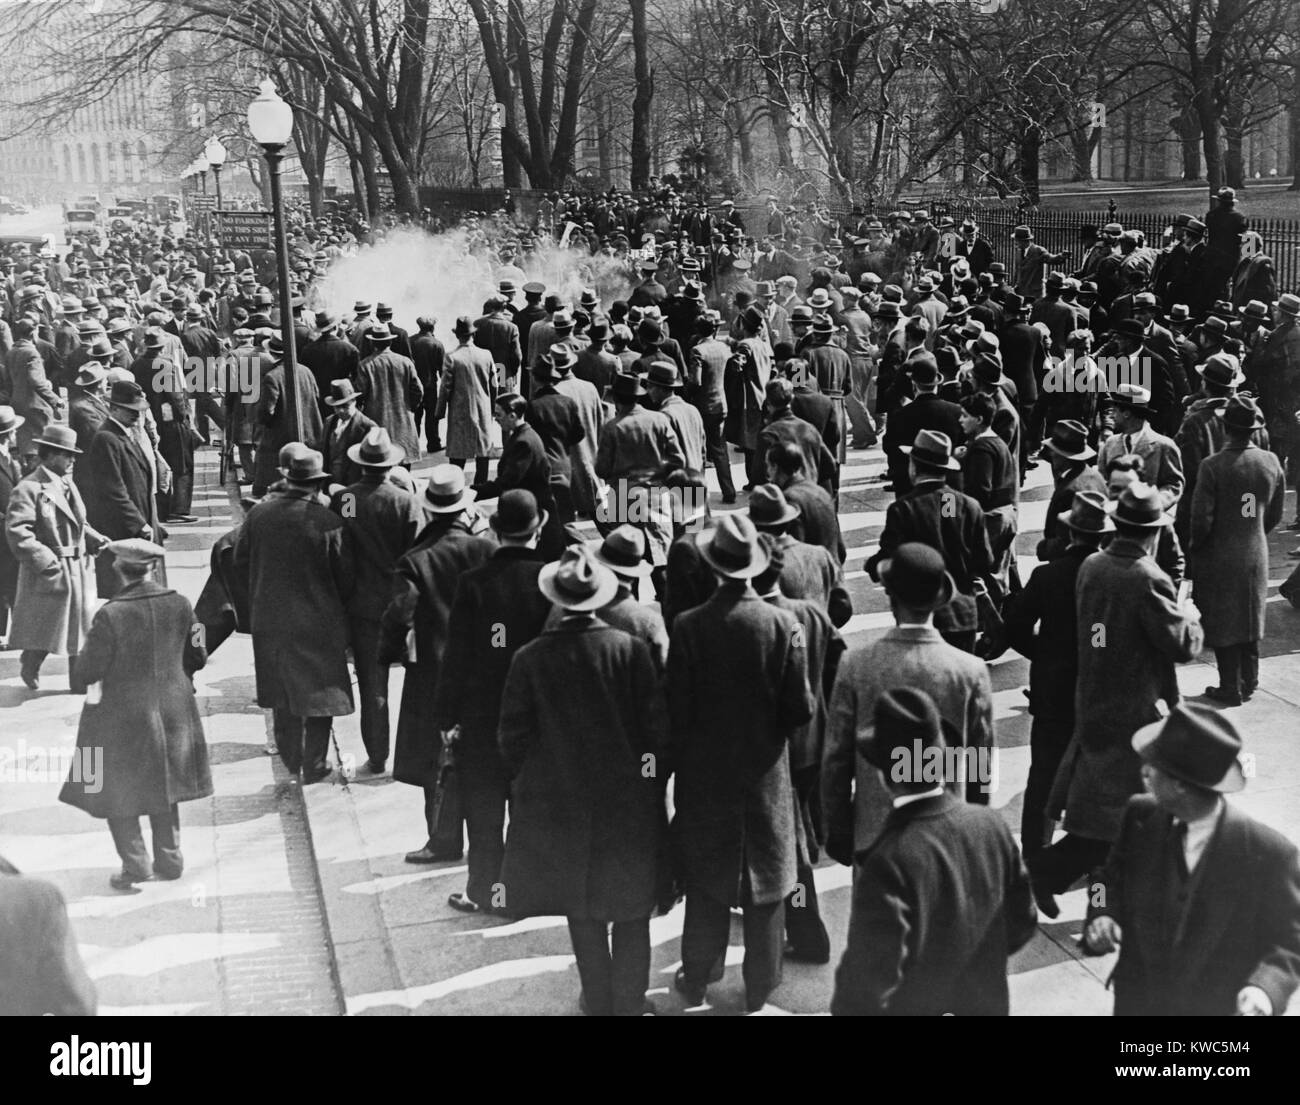 International Unemployment Day at the White House, Washington, D.C. Police used tear gas bombs, night sticks and - Stock Image